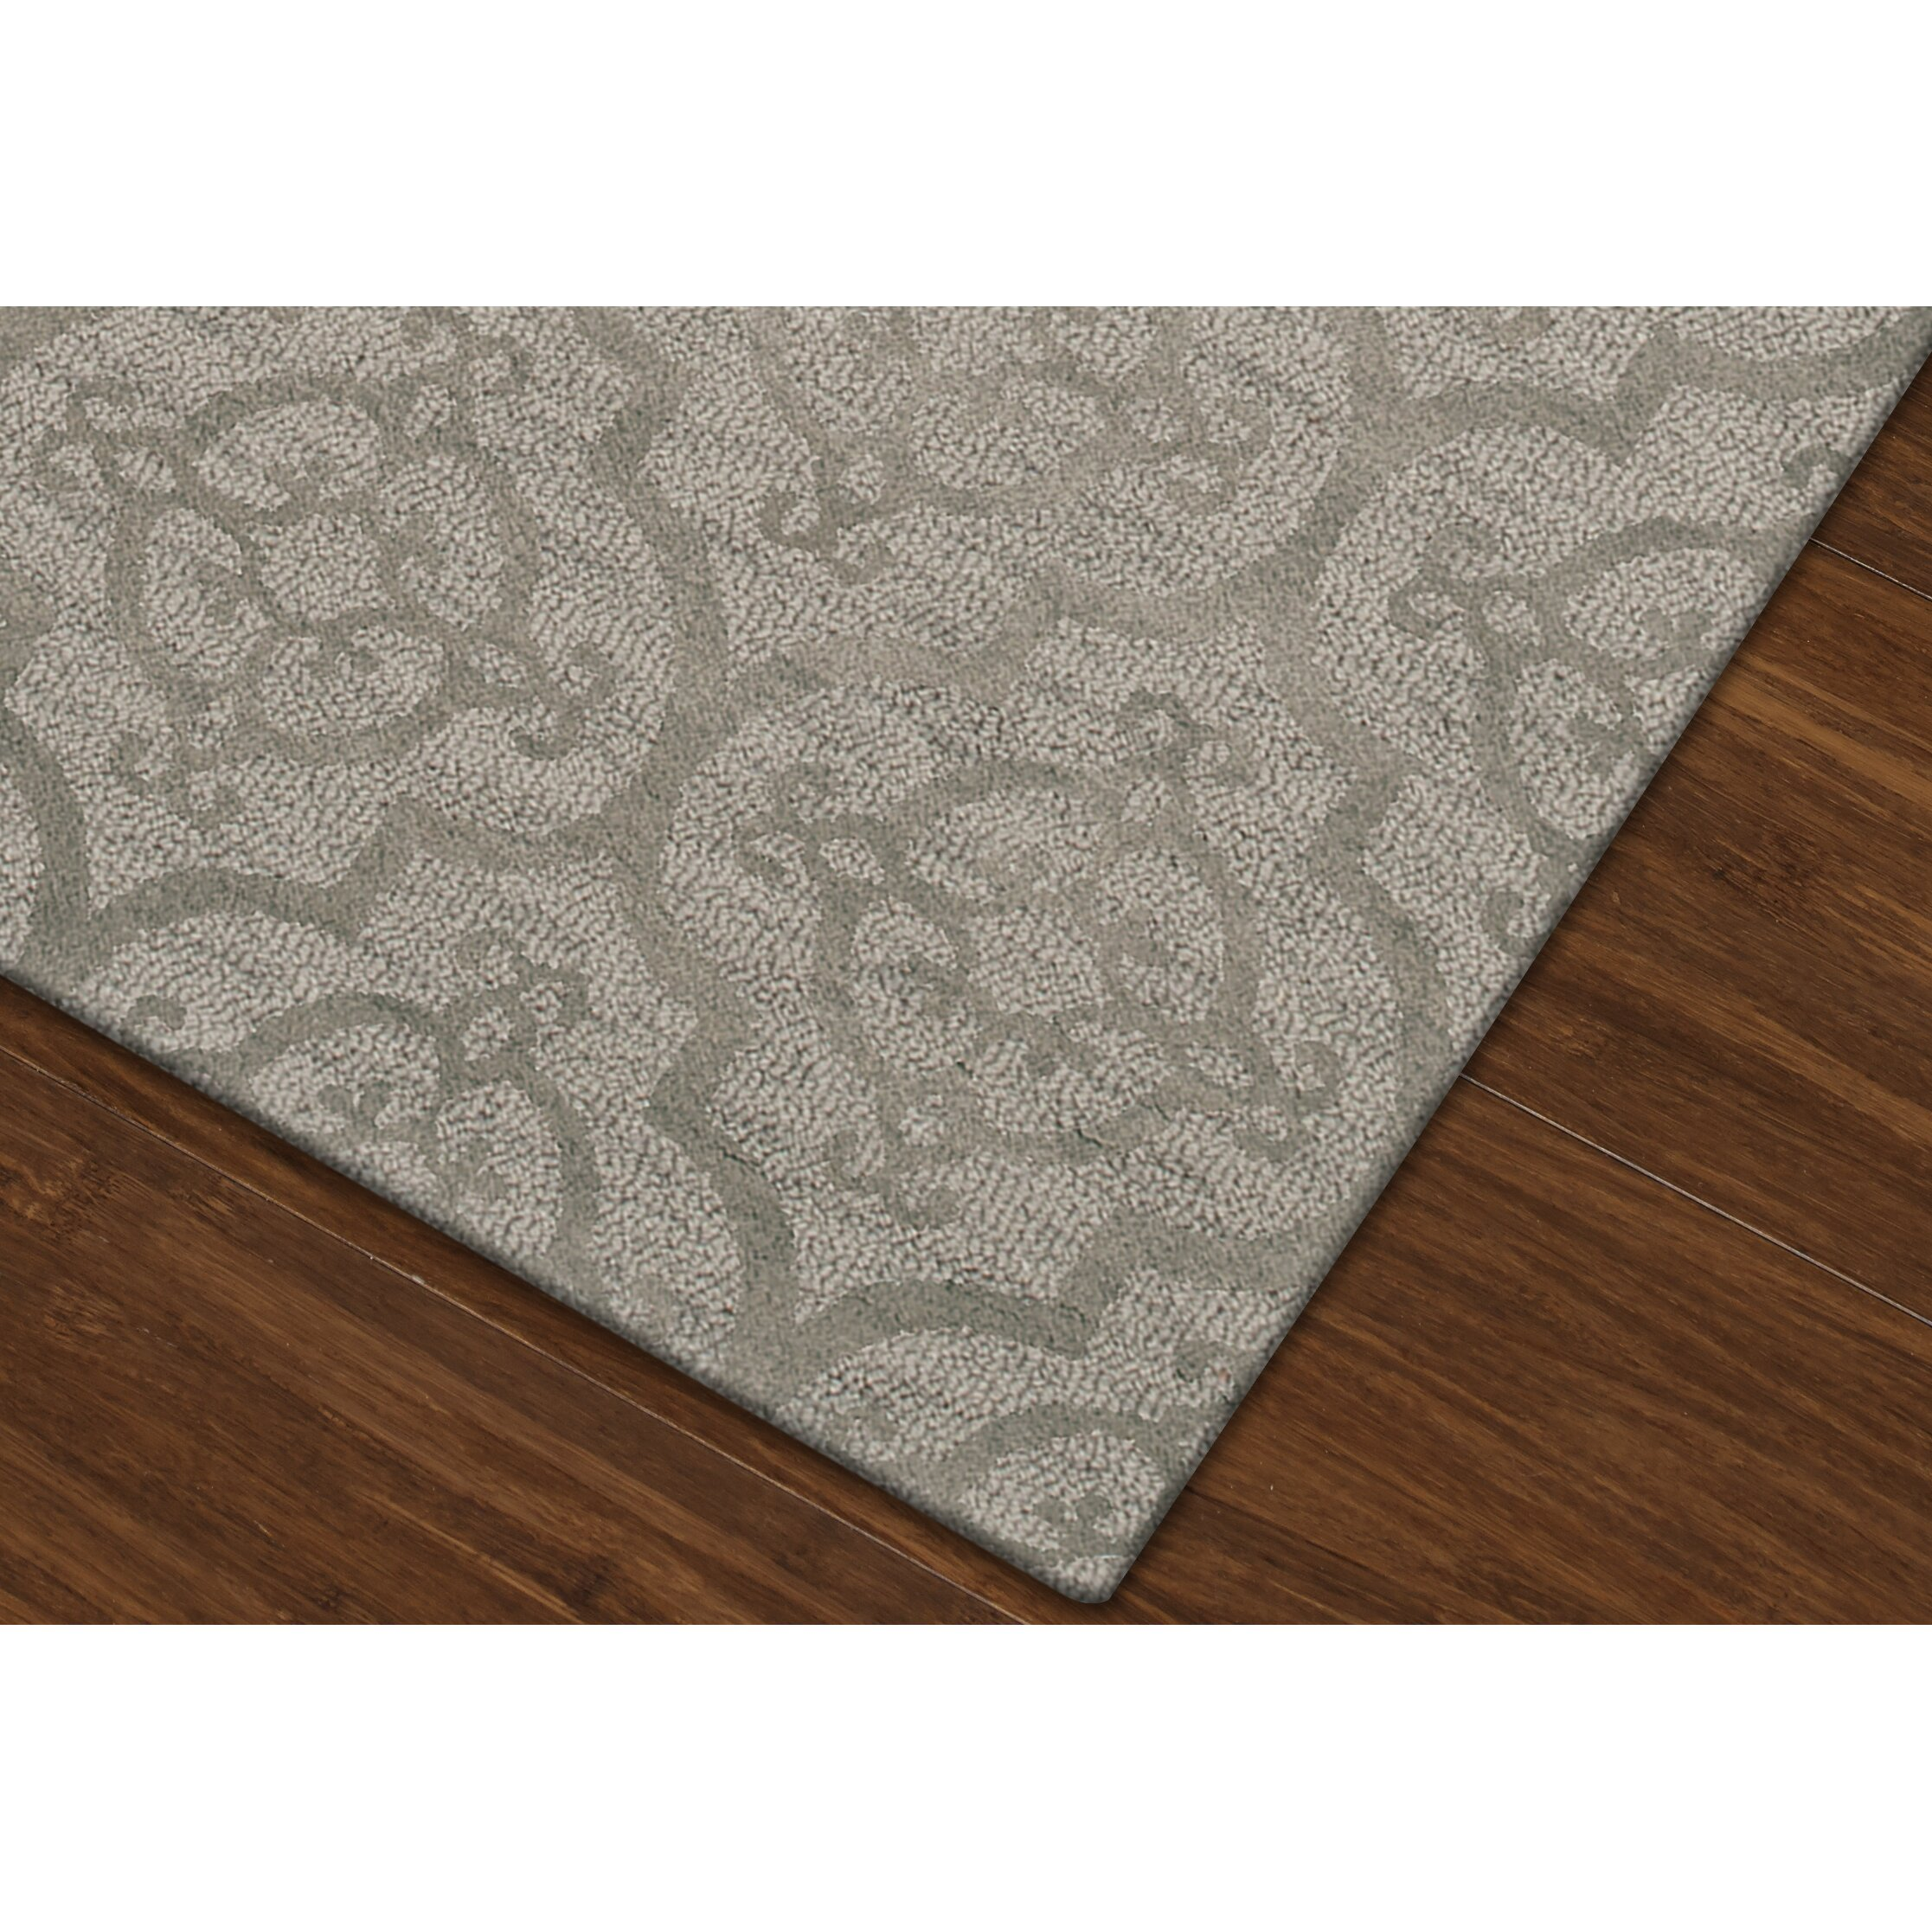 Dalyn rug co bella silver area rug wayfair for Where can i buy area rugs